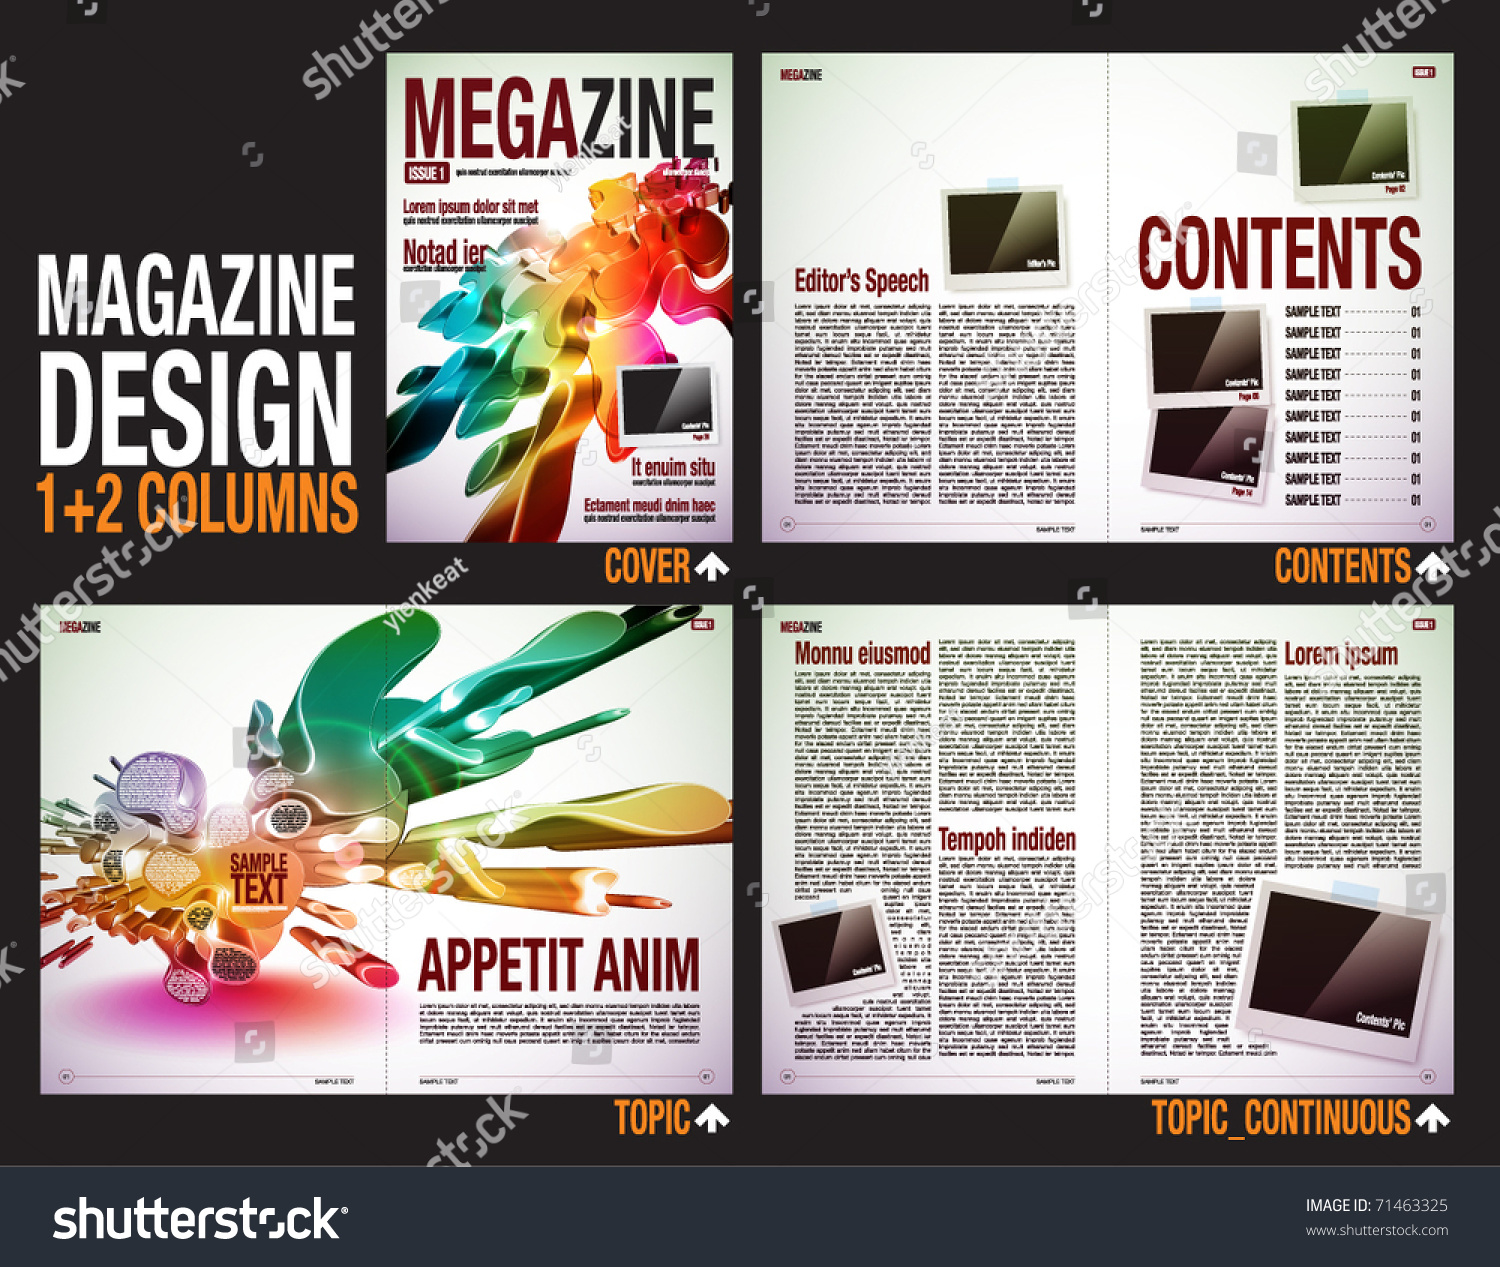 Magazine Layout Design Template With Cover 6 Pages 3